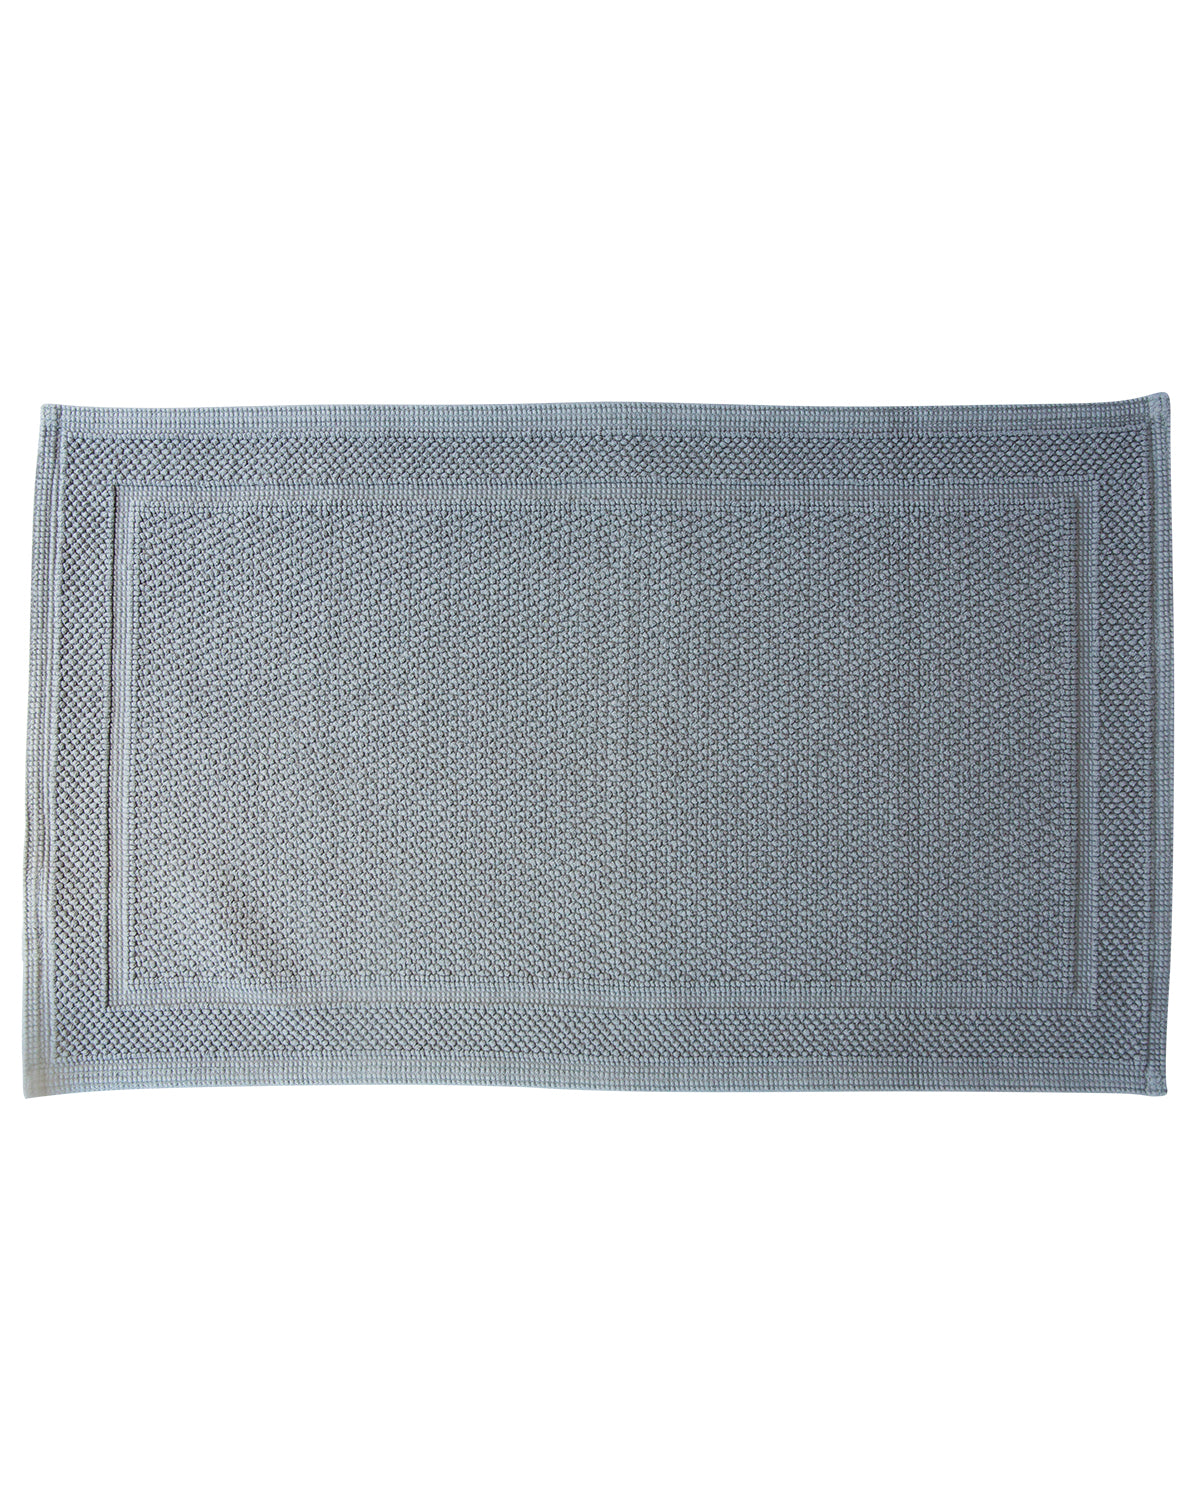 Mayfair Bath Mat